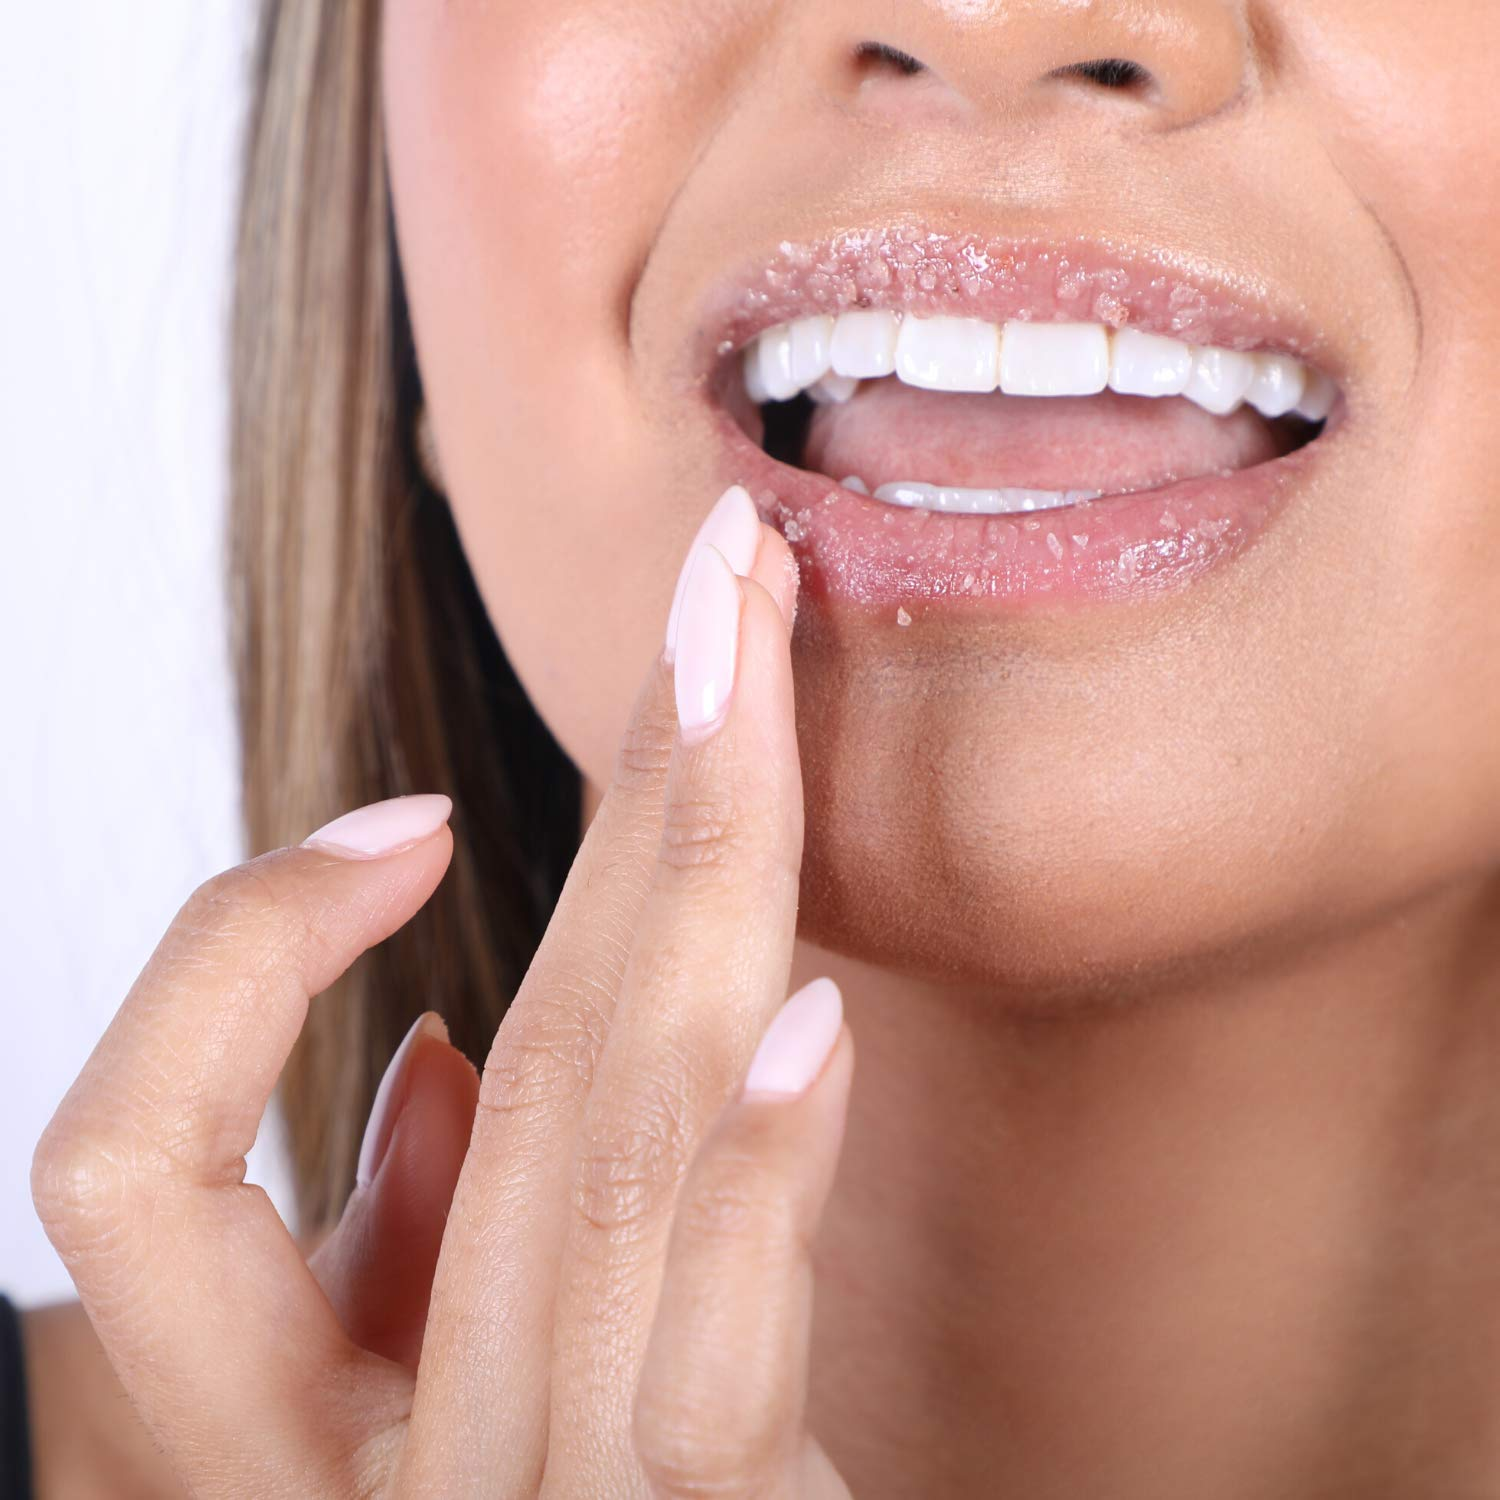 how to get plump an soft lips (exfoliation)